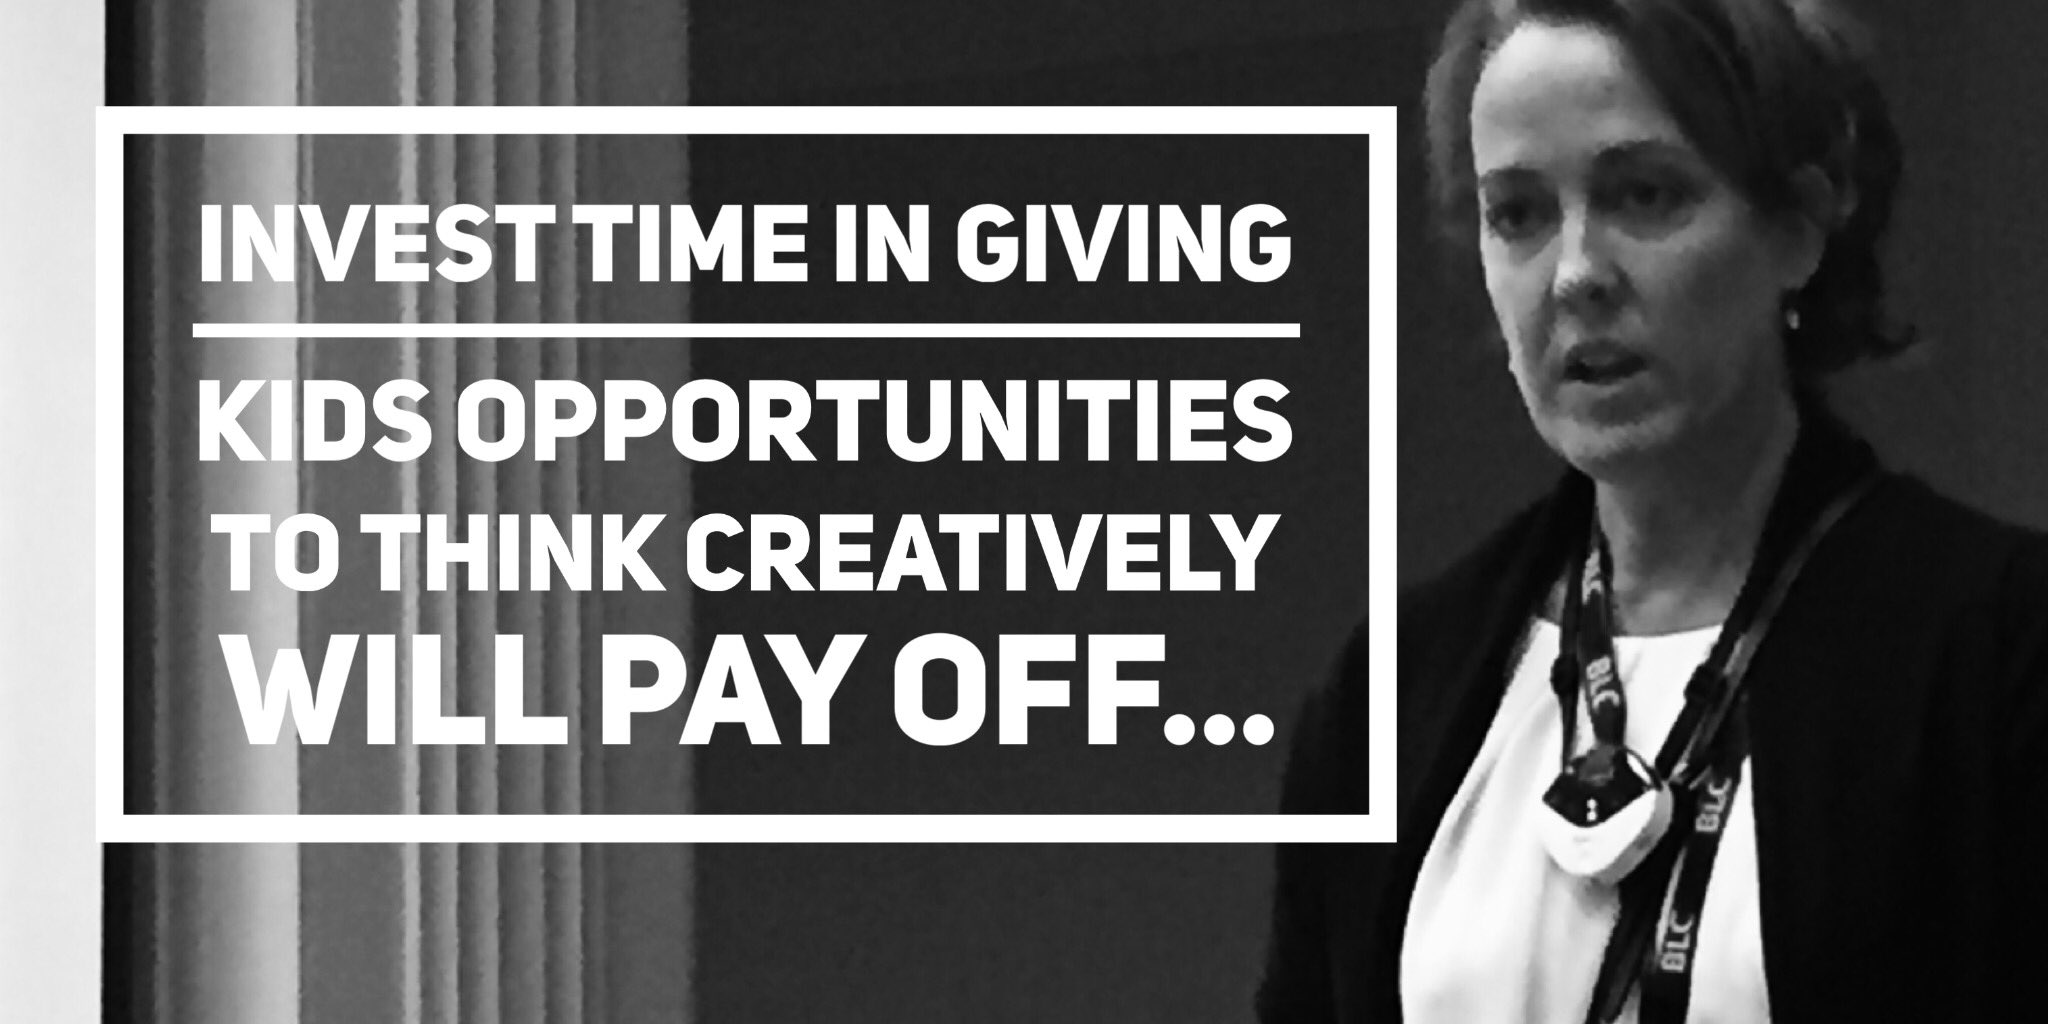 @sewilkie Invest time in giving kids opportunities to think creatively will pay off... #blc16 #lism https://t.co/Wvlq4LK5tc